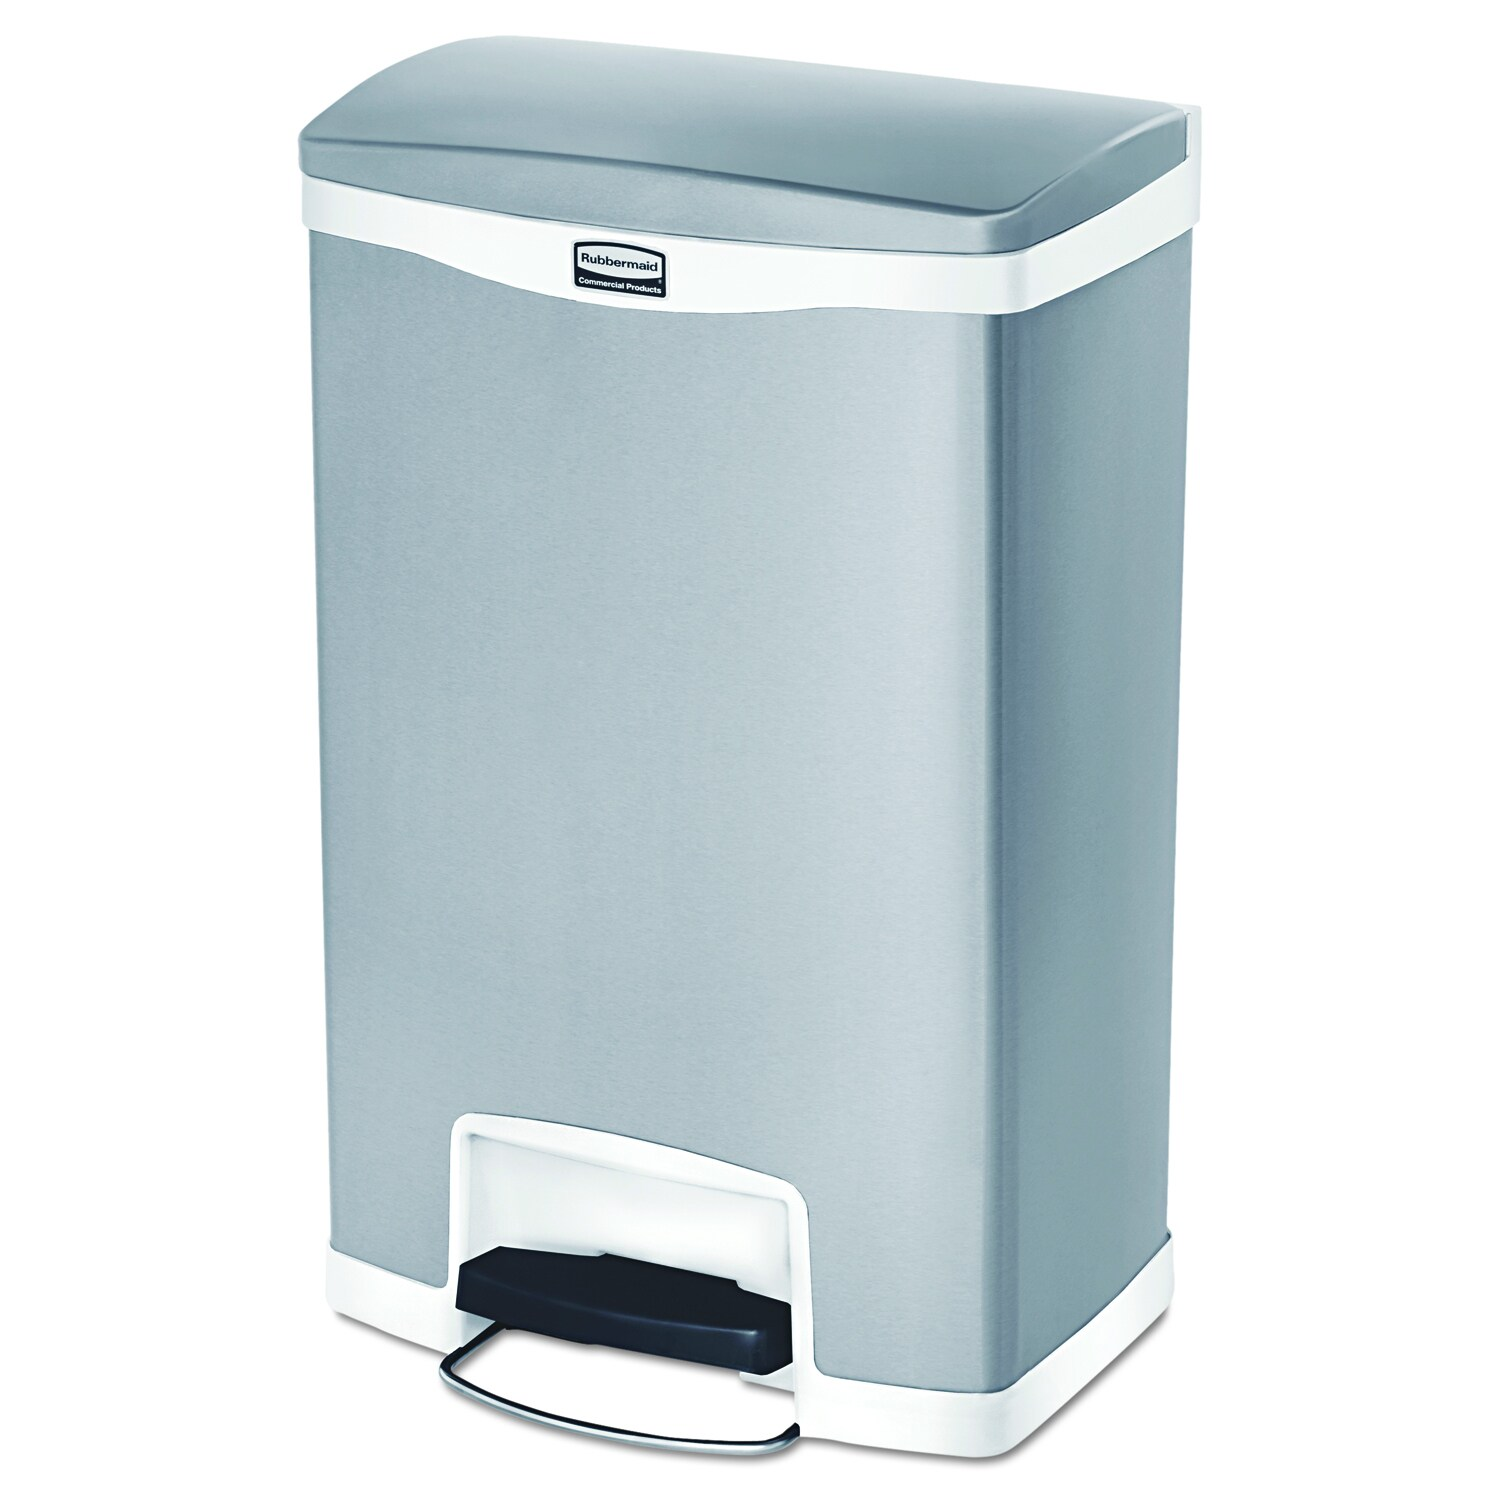 Stainless Steel Rubbermaid Trash Cans & Liners | Find Great ...